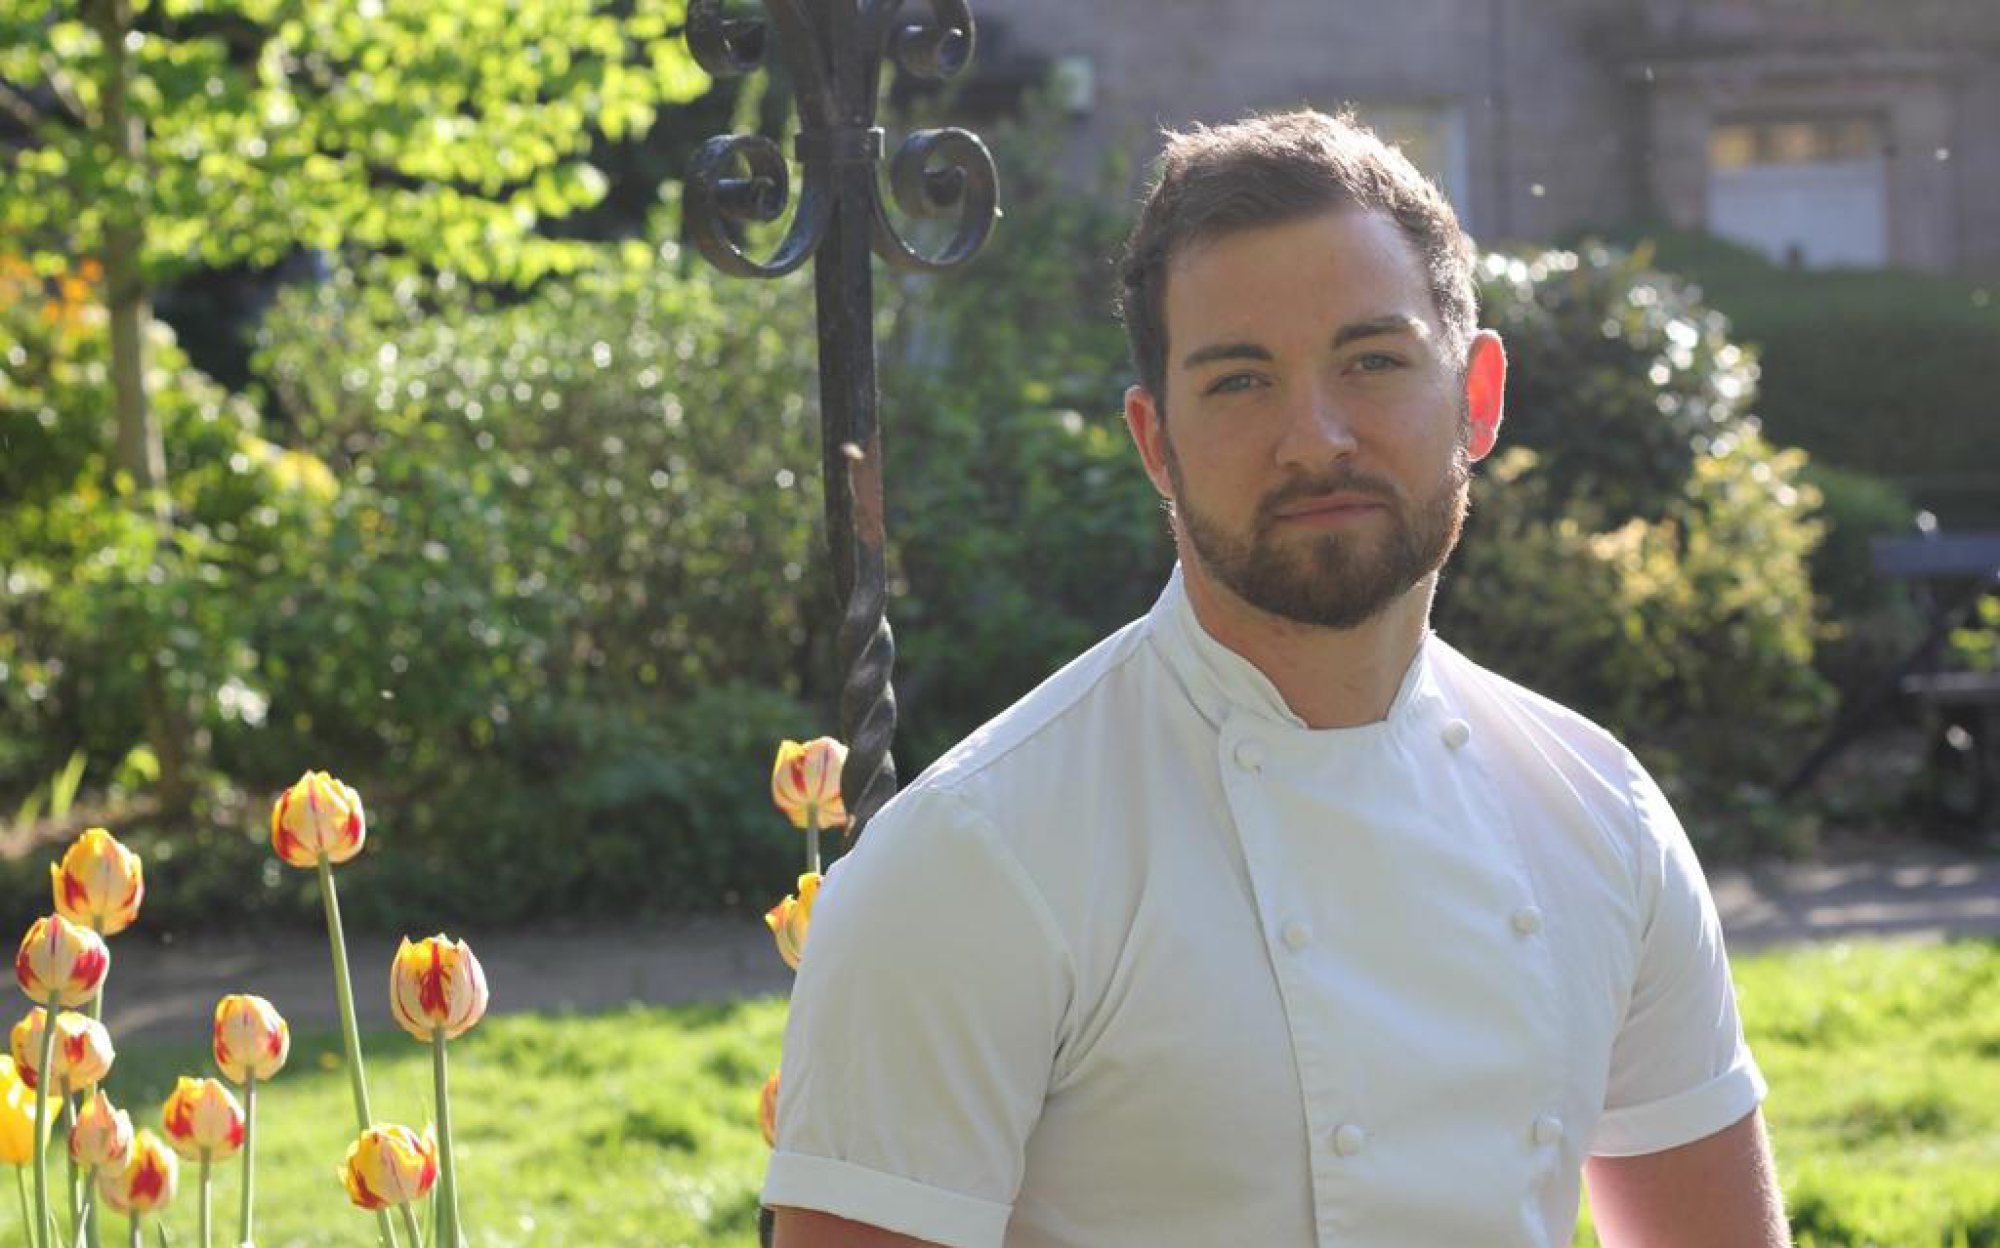 Michael Carr, head chef of Fenchurch Restaurant